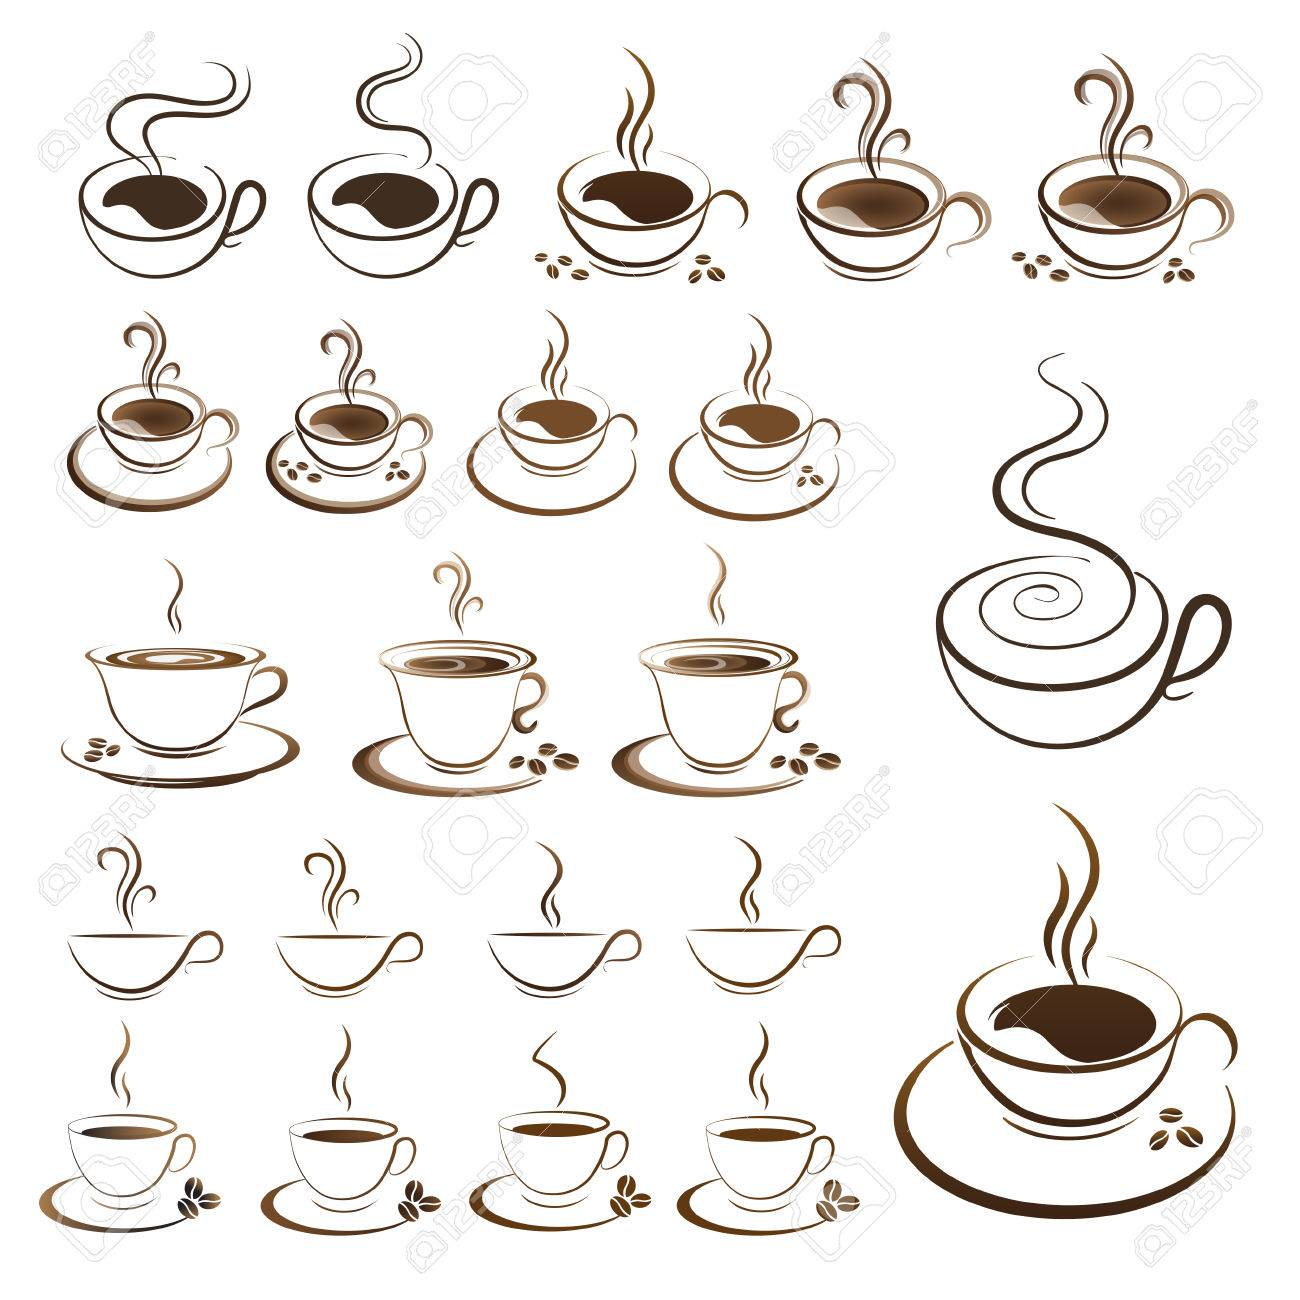 clipart set hot coffee cup vector on a white background.